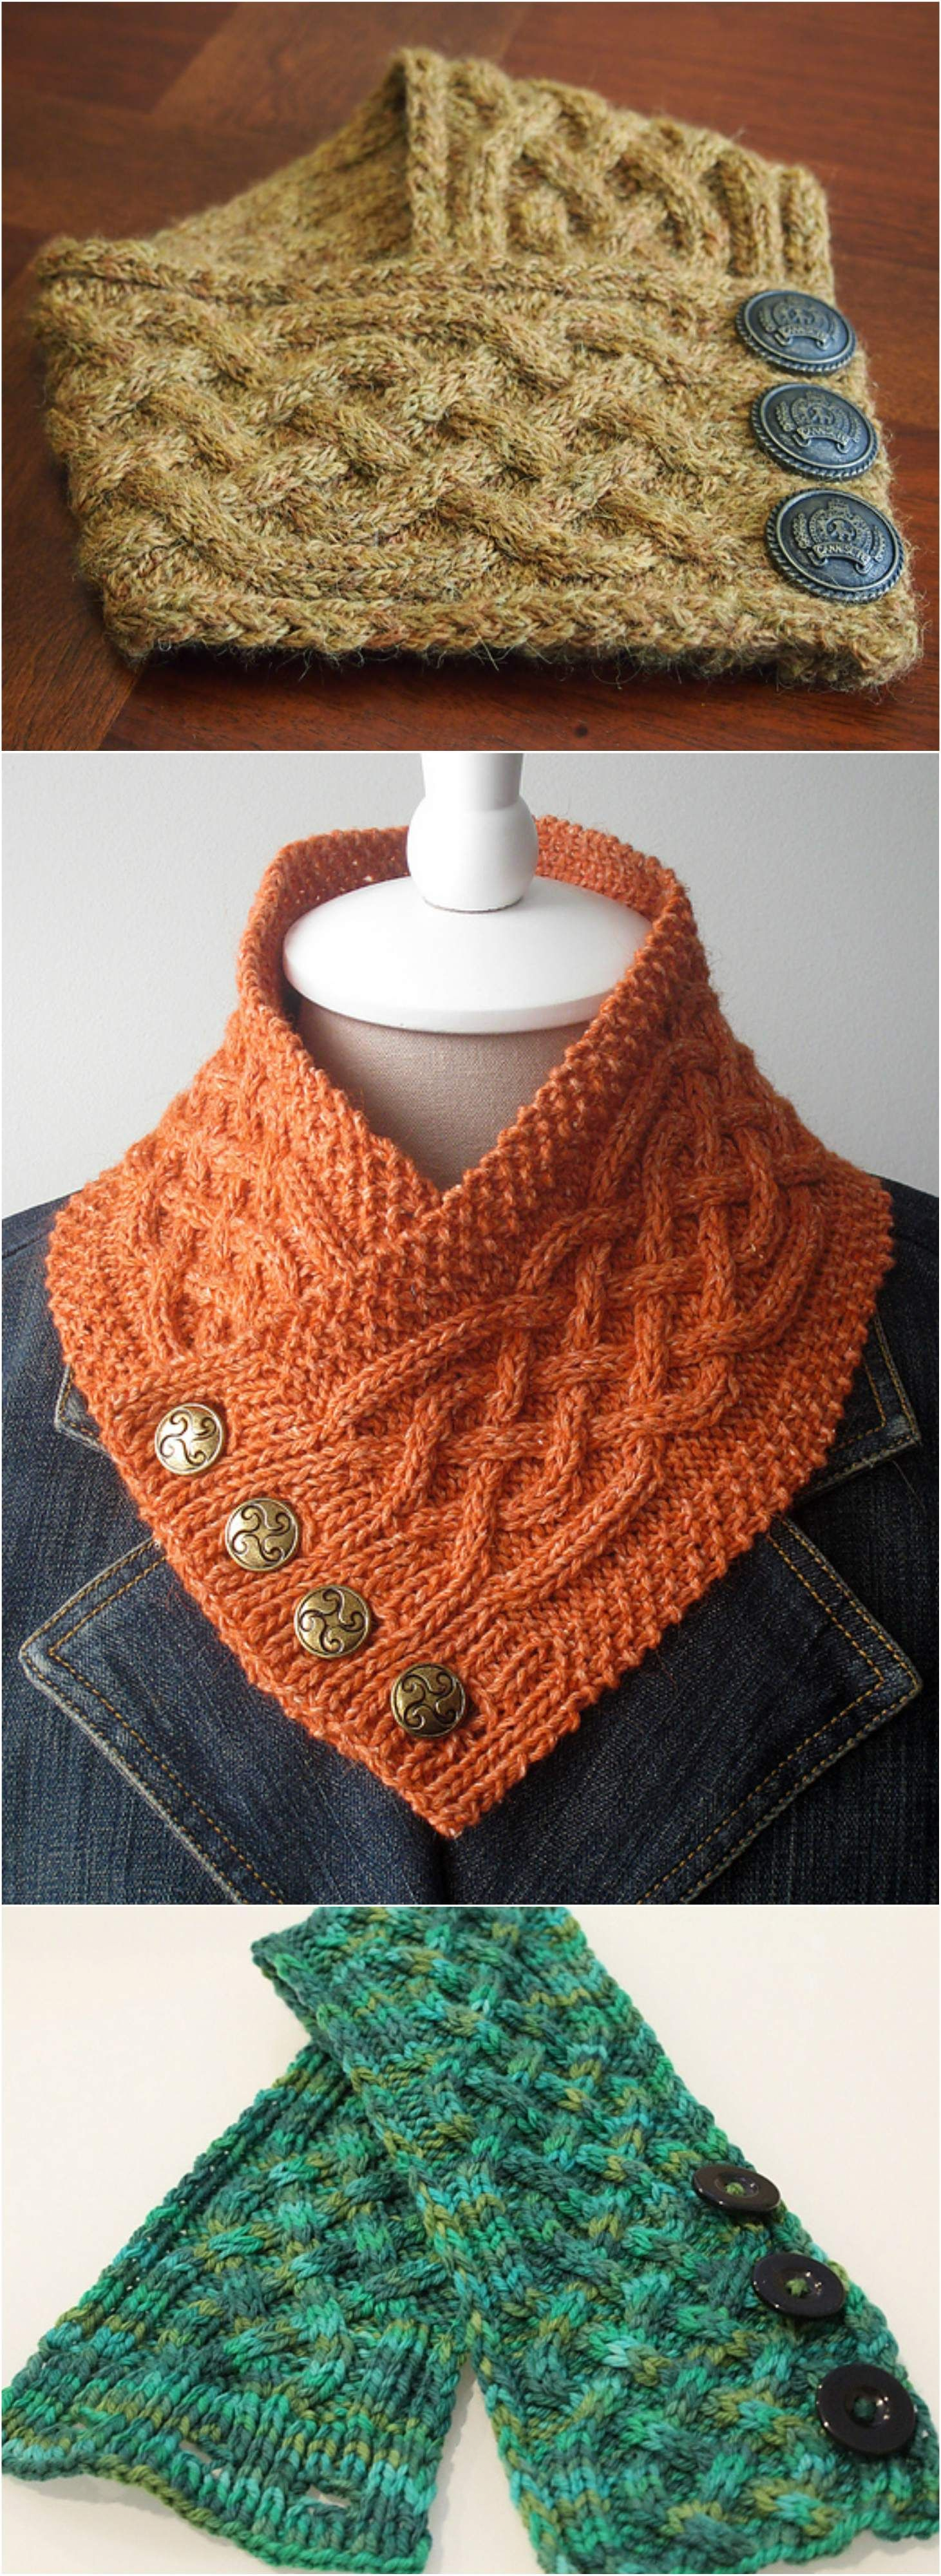 Knit celtic cable neckwarmer knitting pinterest cable knit celtic cable neckwarmer bankloansurffo Image collections